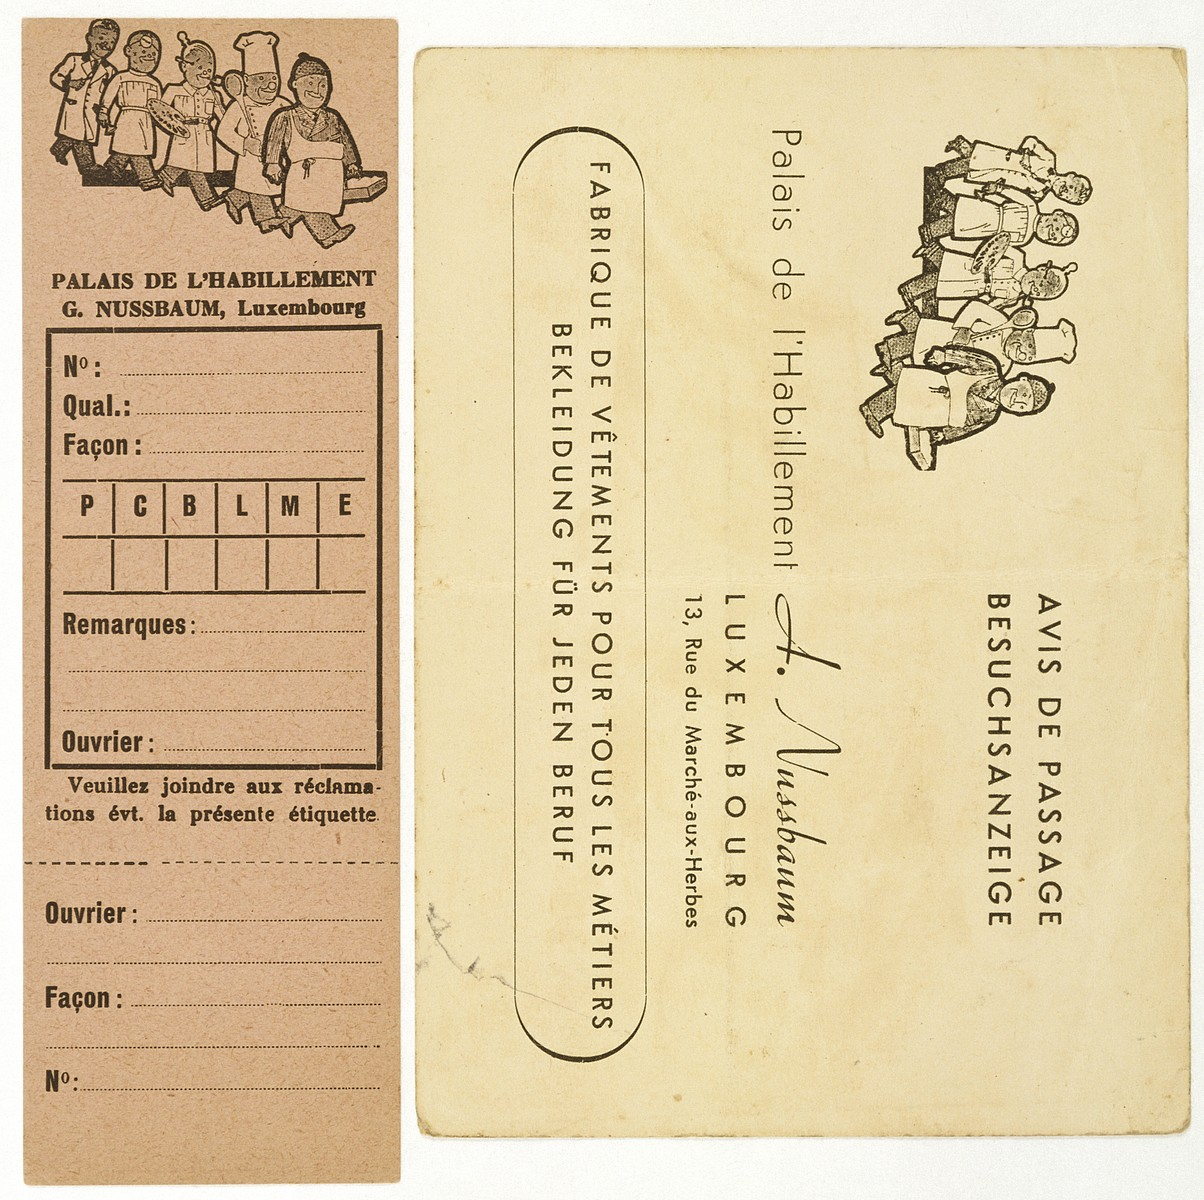 Business card belonging to Albert Nussbaum, owner of the Palais d'Habillement clothing factory on the rue du Marche-aux-Herbes in Luxembourg.